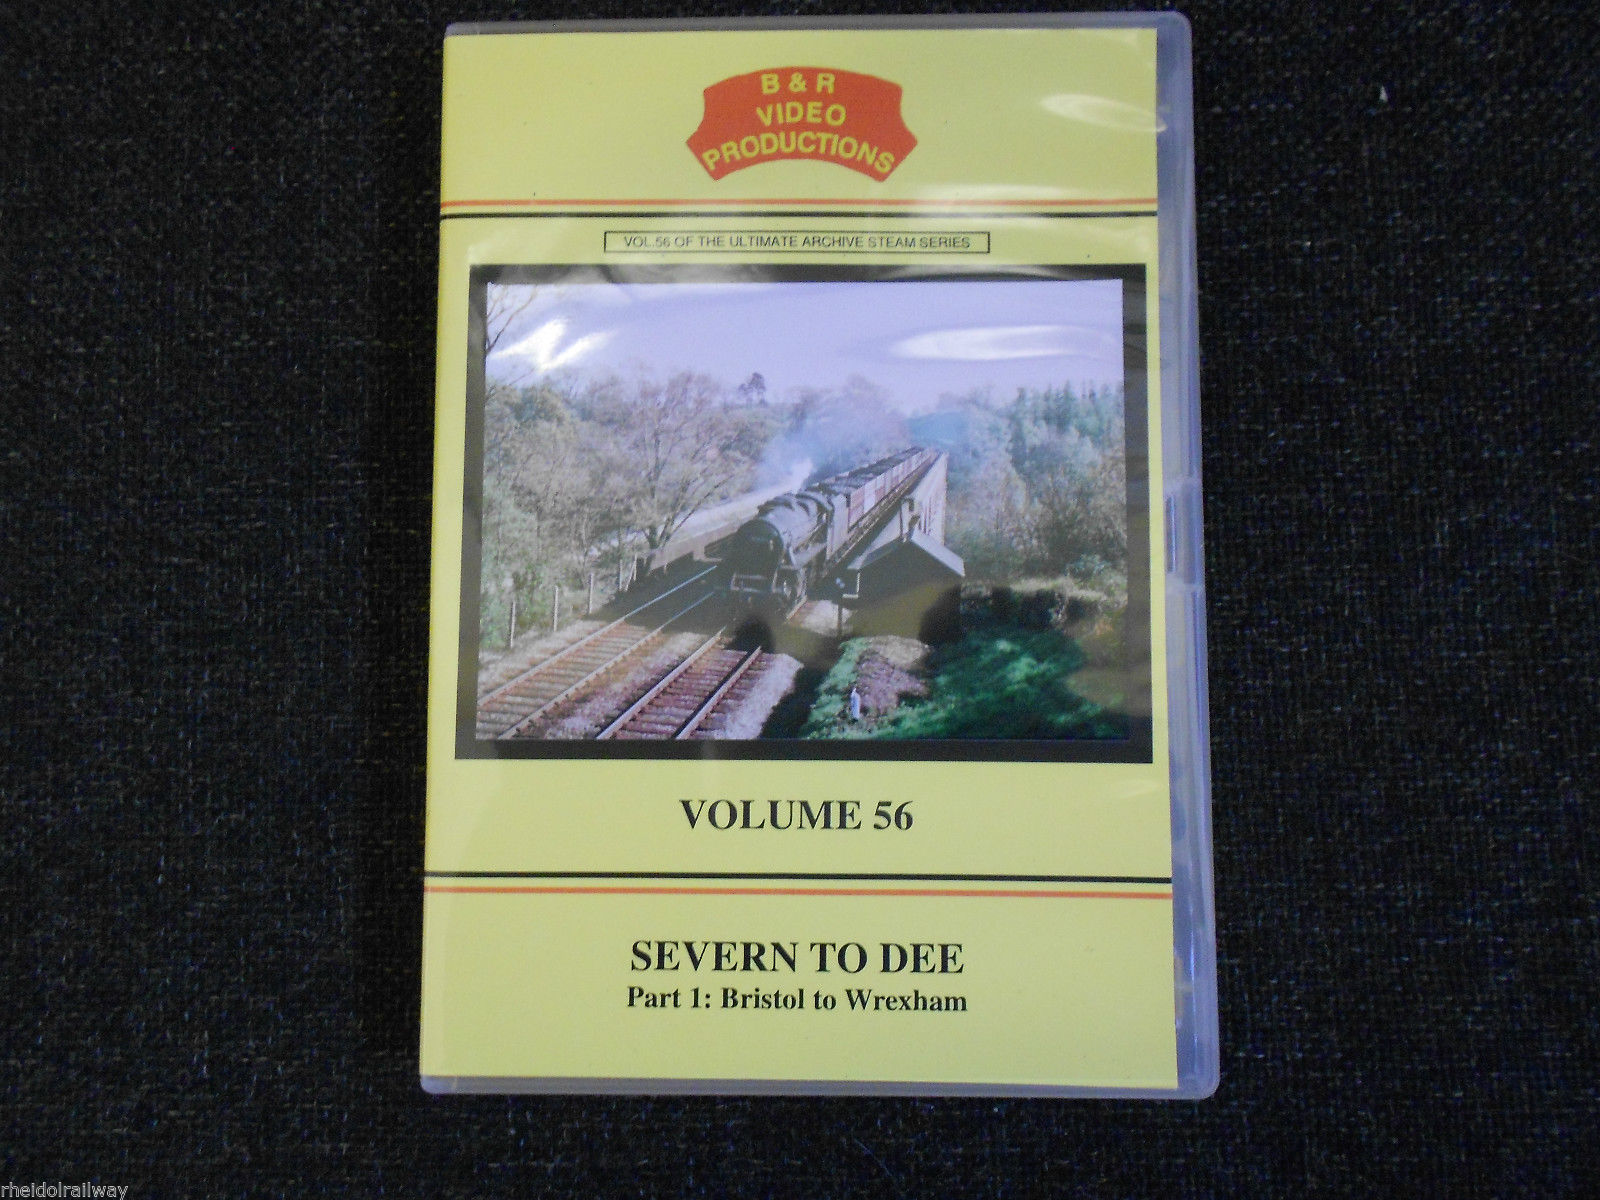 Bristol, Wrexham, Shrewsbury, Crewe, Severn To Dee Part 1 B&R Vol 56 DVD - The Vale of Rheidol Railway